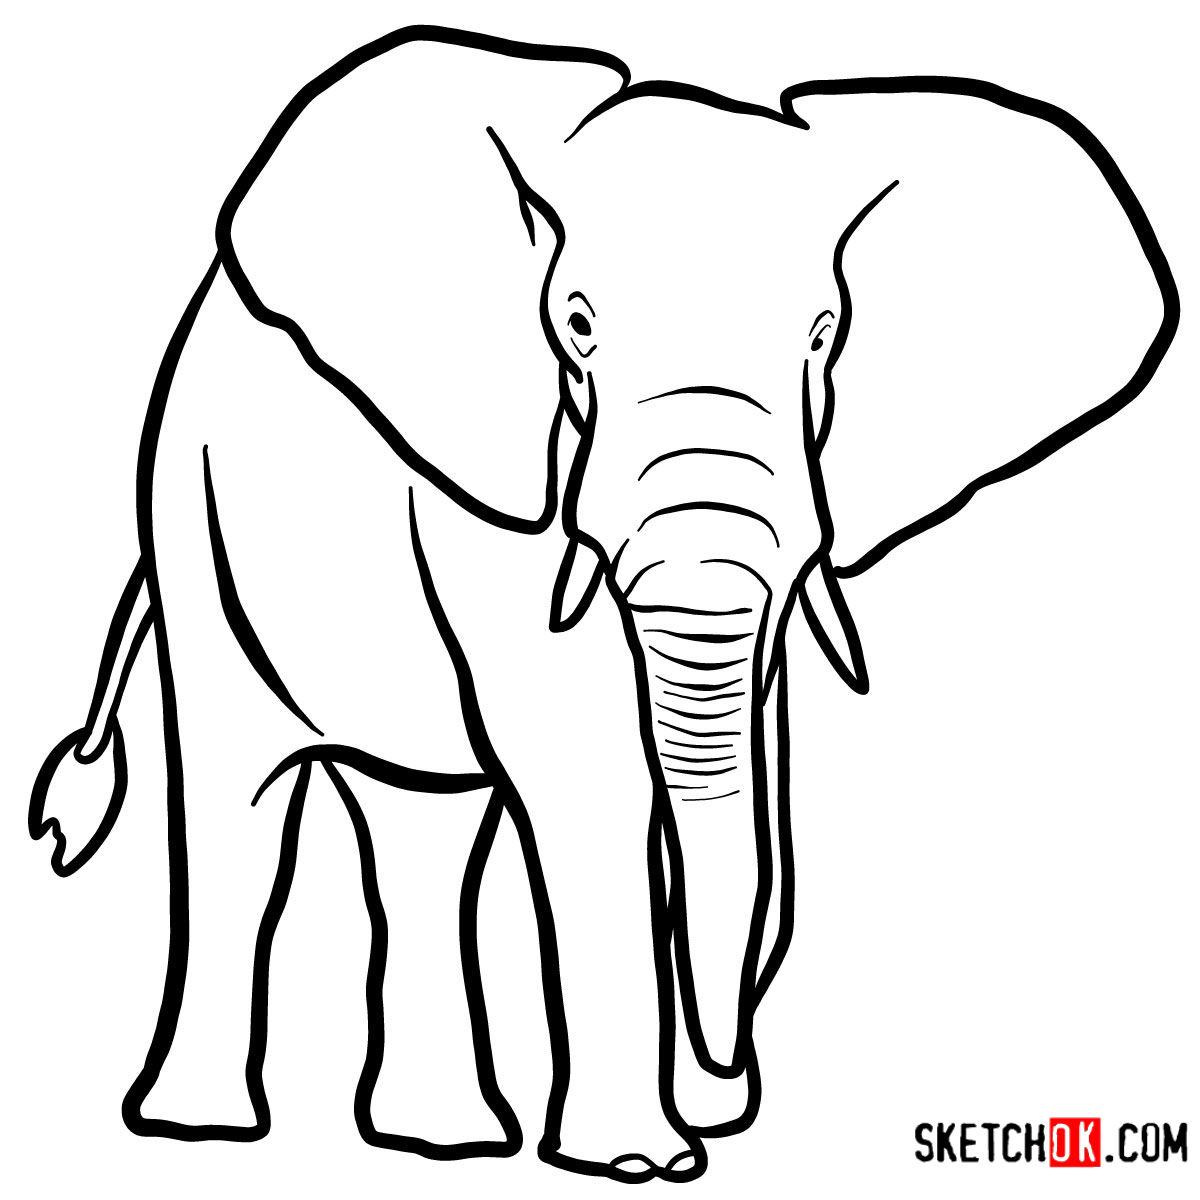 How To Draw An Elephant Front View Wild Animals Step By Step